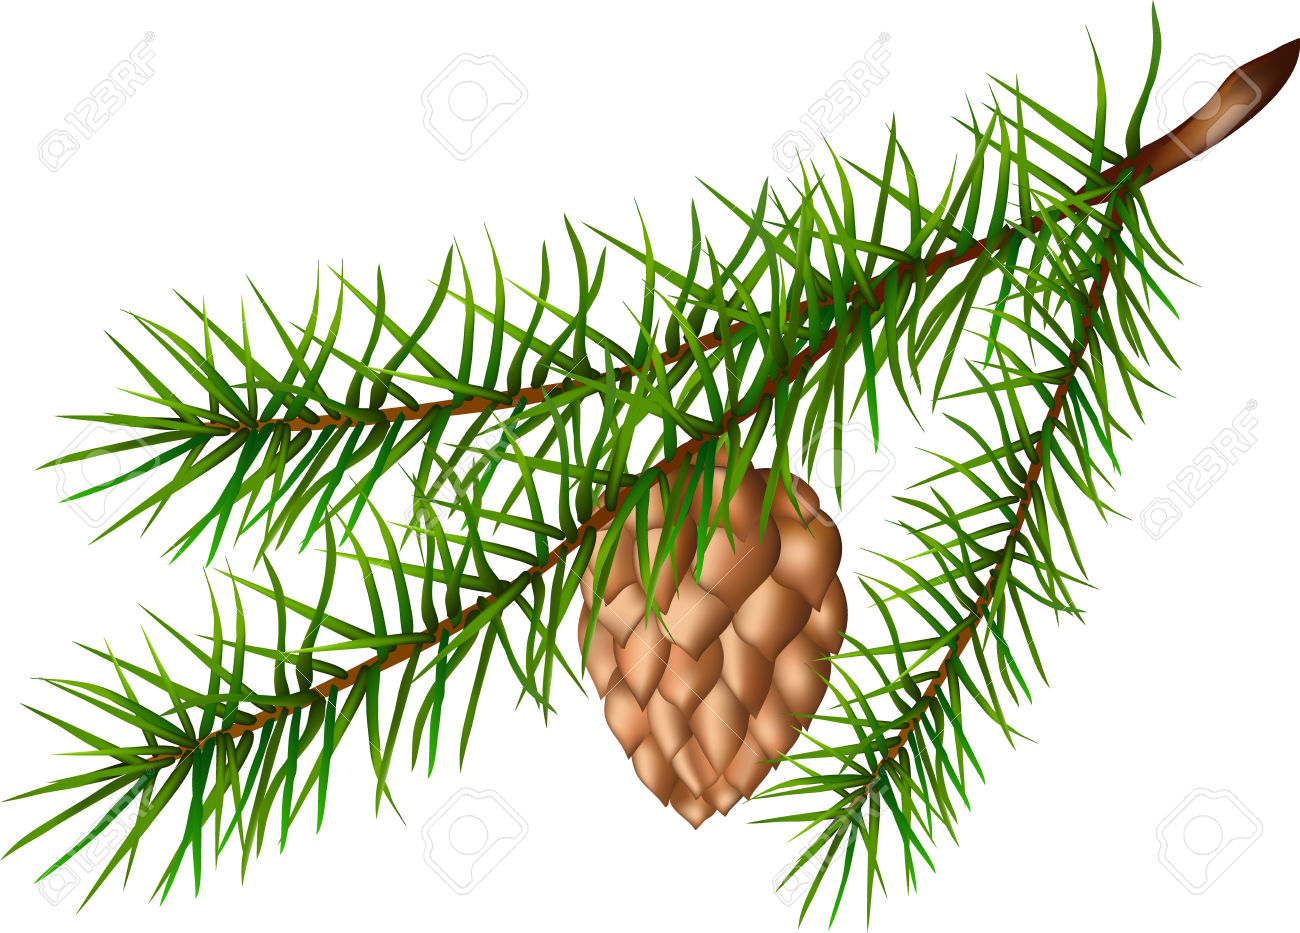 Long Pine Needles Images, Stock Pictures, Royalty Free Long Pine.